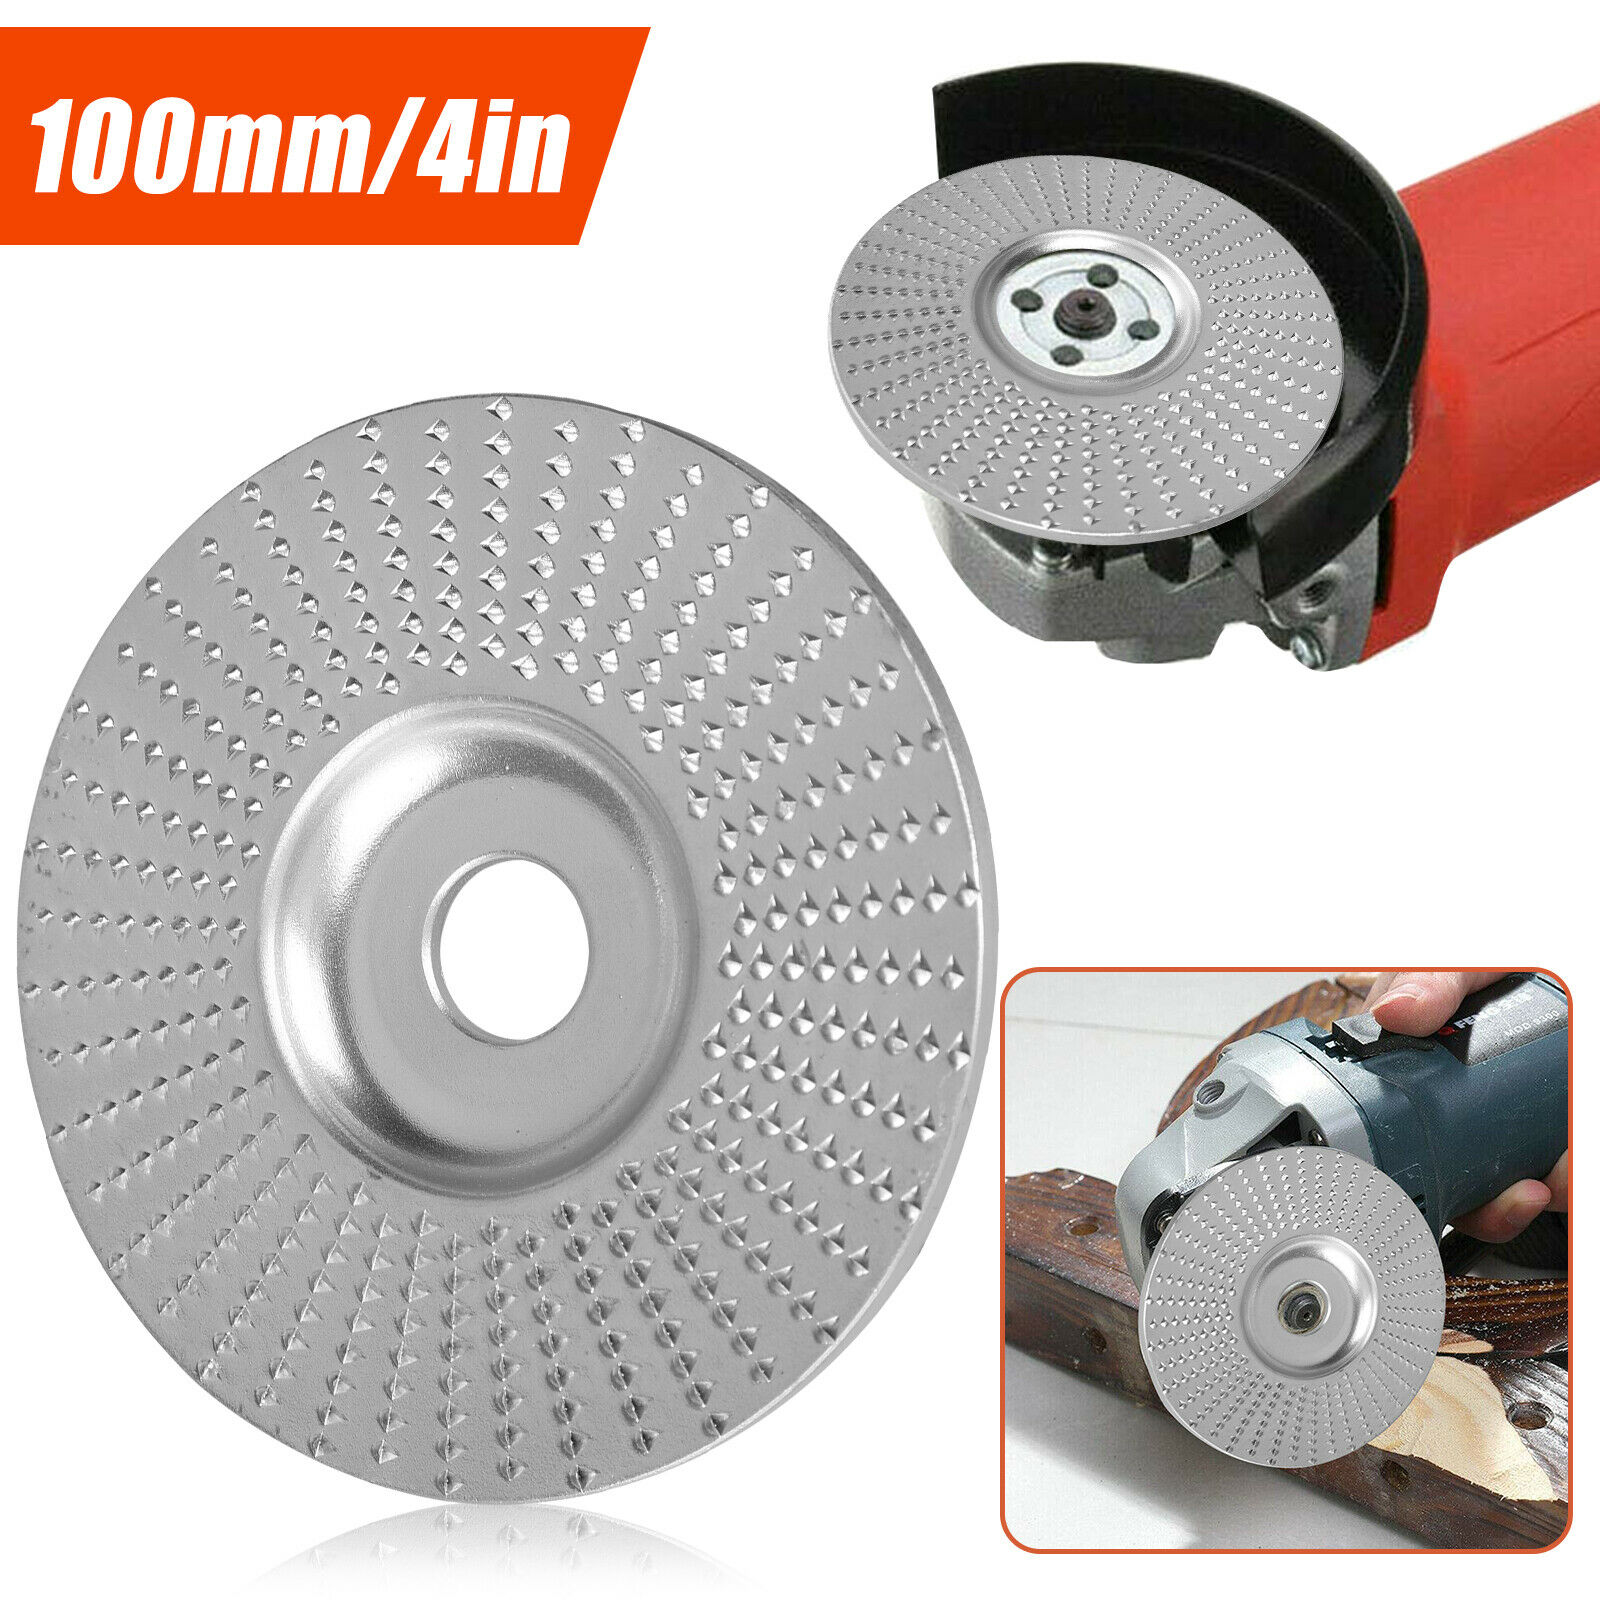 Carbide Wood Sanding Carving Shaping Disc Fits Angle Grinder//Grinding Wheel Tool